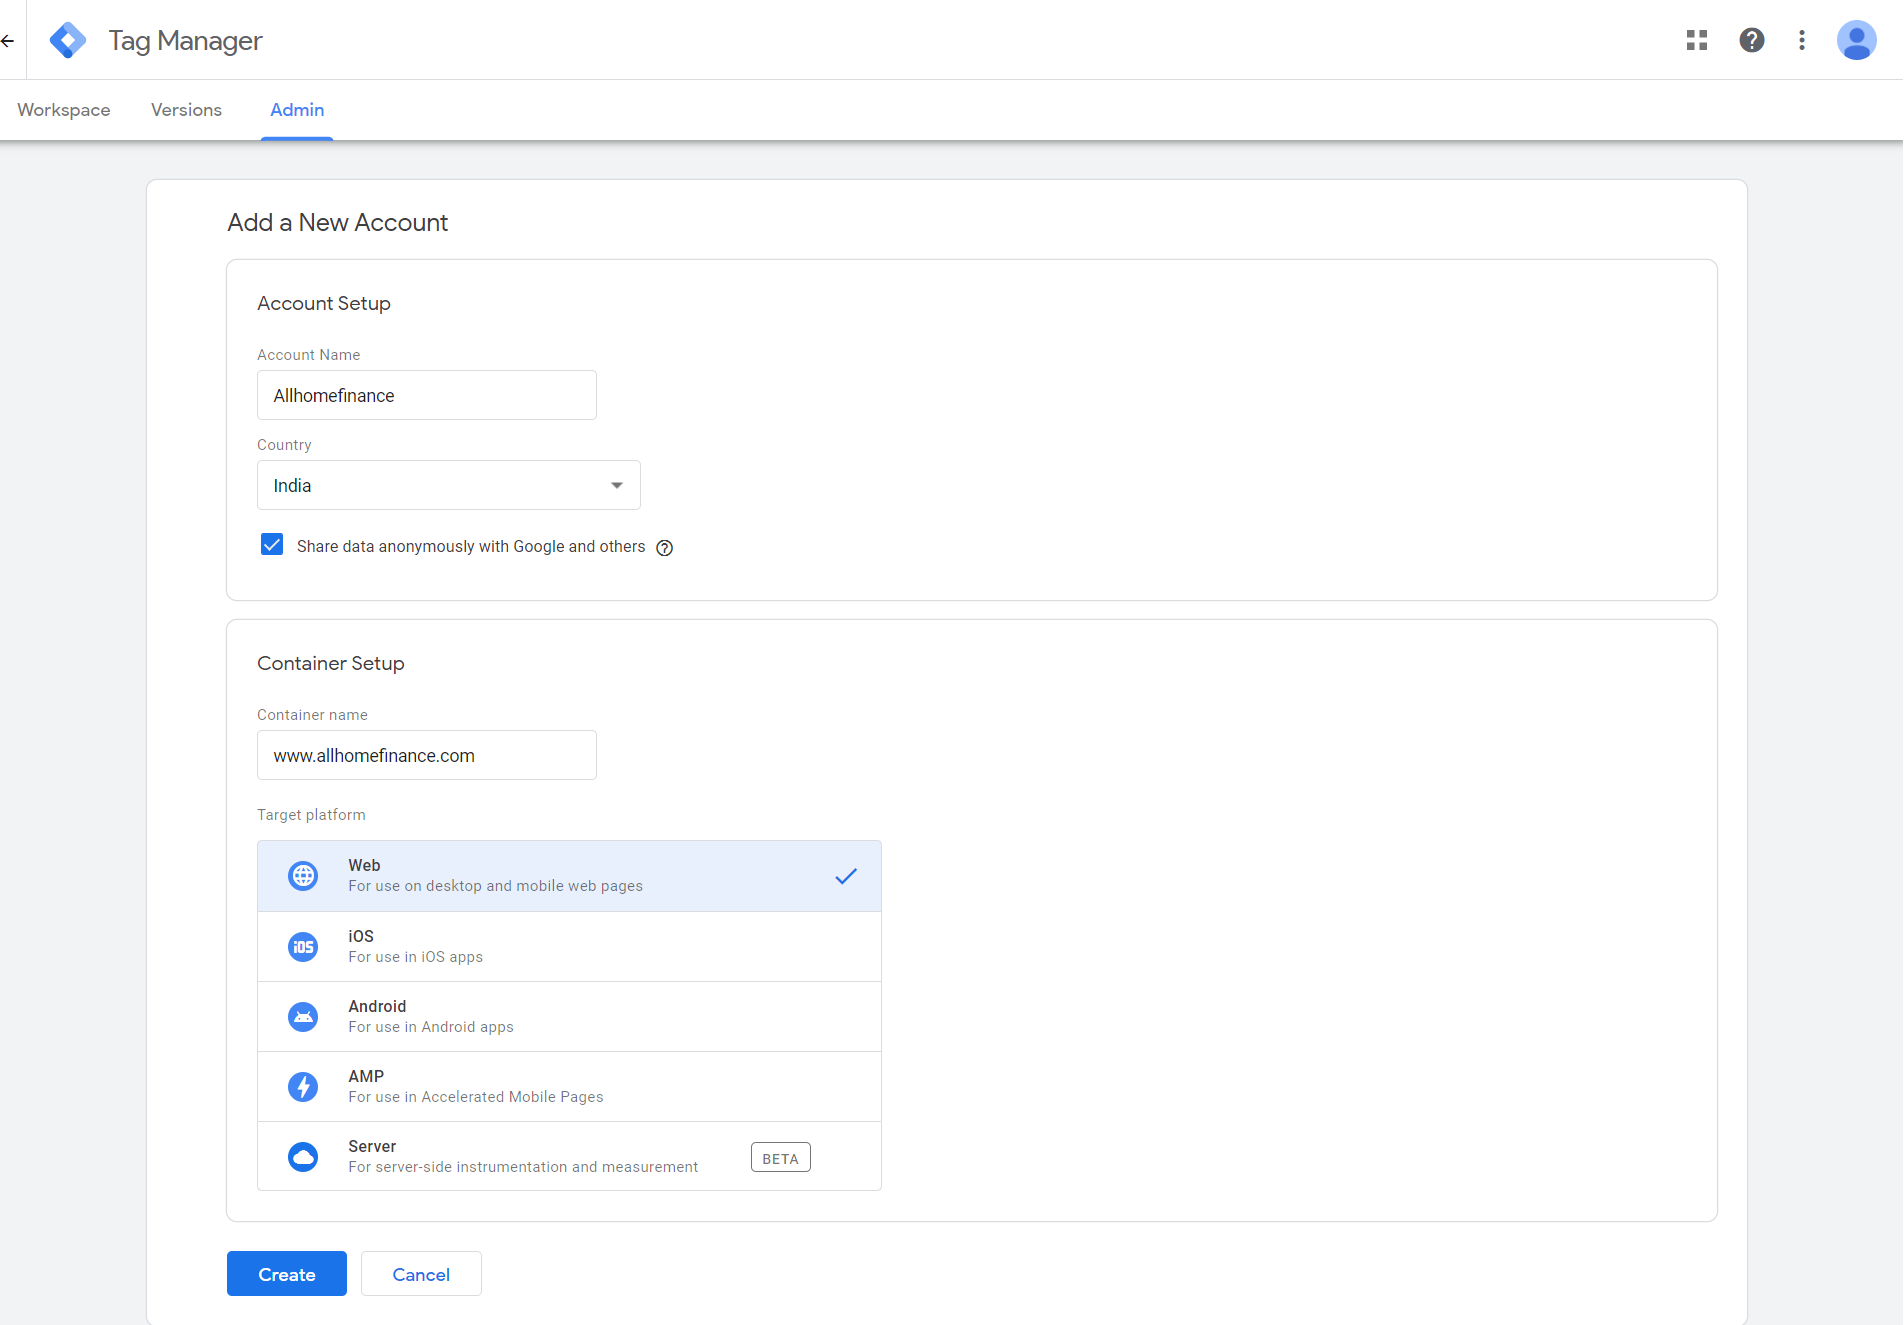 how to set up account in Google tag manager primathink